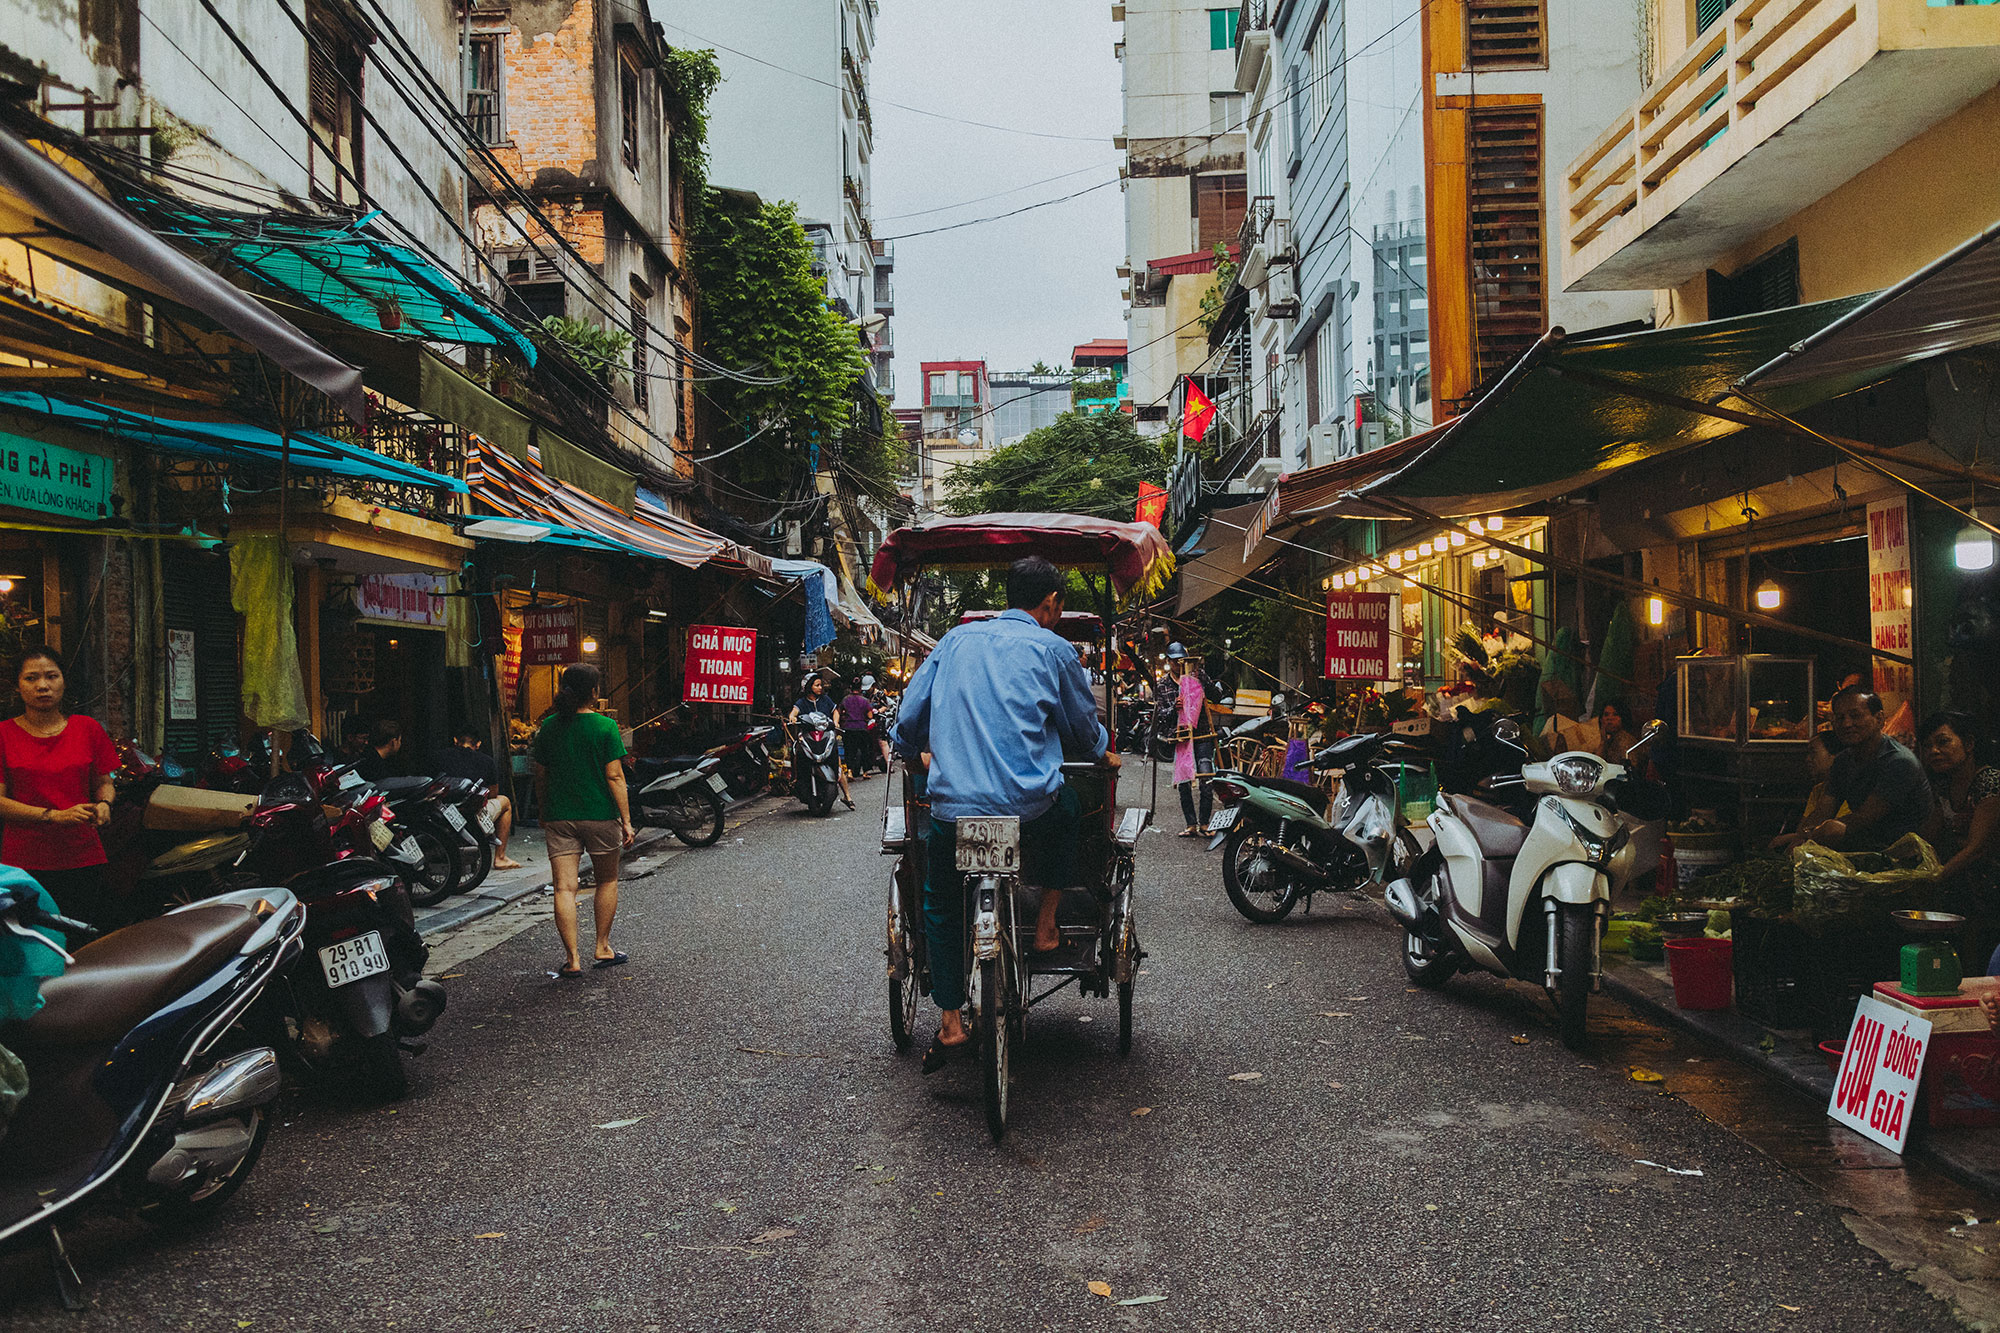 On The Streets of Hanoi, Vietnam - iHeartAlice.com Travel, Food & Lifestyleblog by Alice M. Huynh / Vietnam Travel Guide